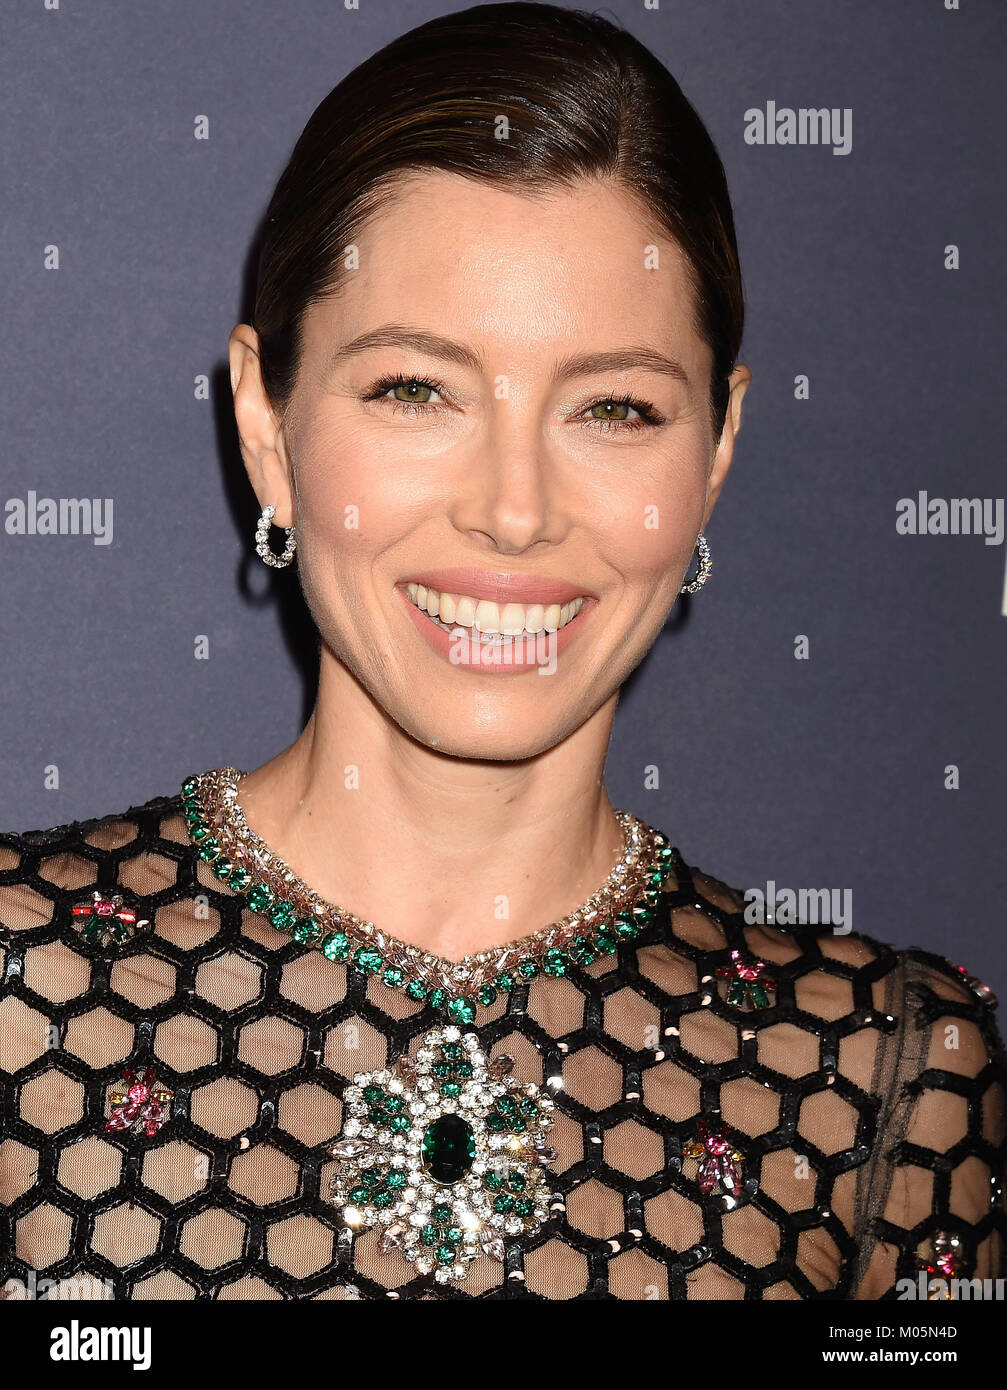 JESSICA BIEL US film actress  attends the 2017 Baby2Baby Gala at 3Labs on November 11, 2017 in Culver City, California. - Stock Image